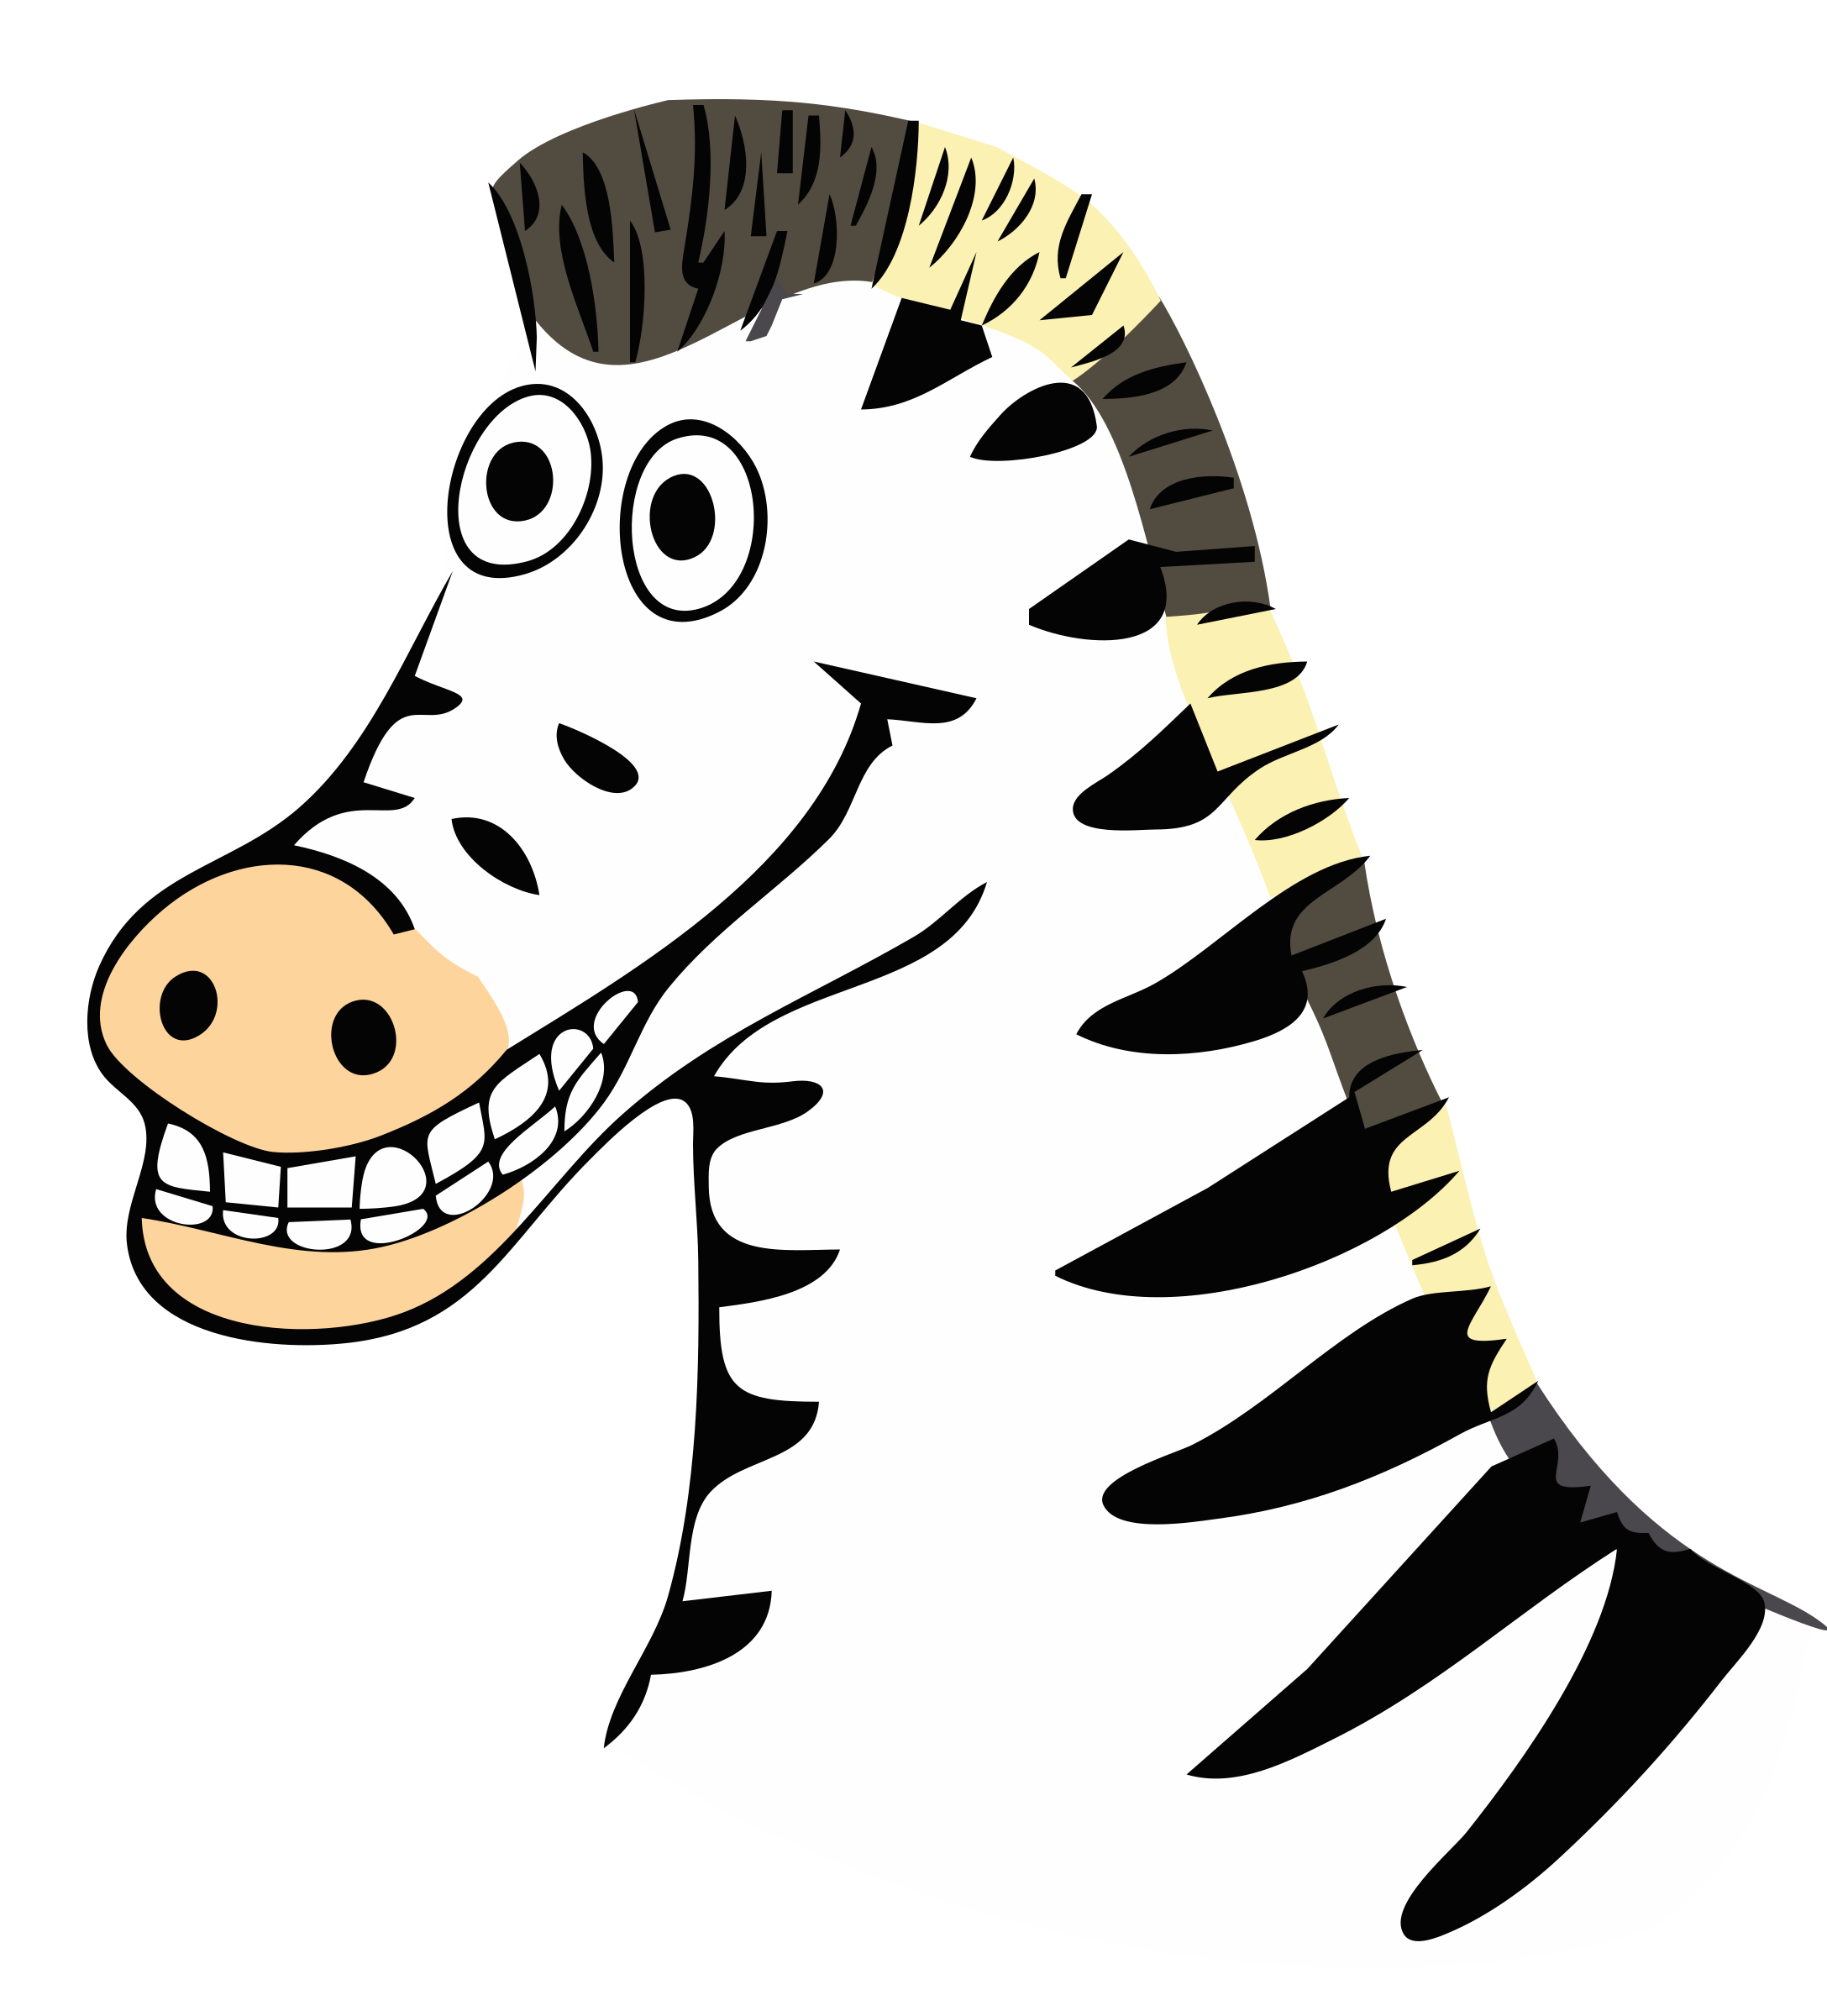 Zebra star clipart png drawn zebra Icons PNG - Free PNG and Icons Downloads png